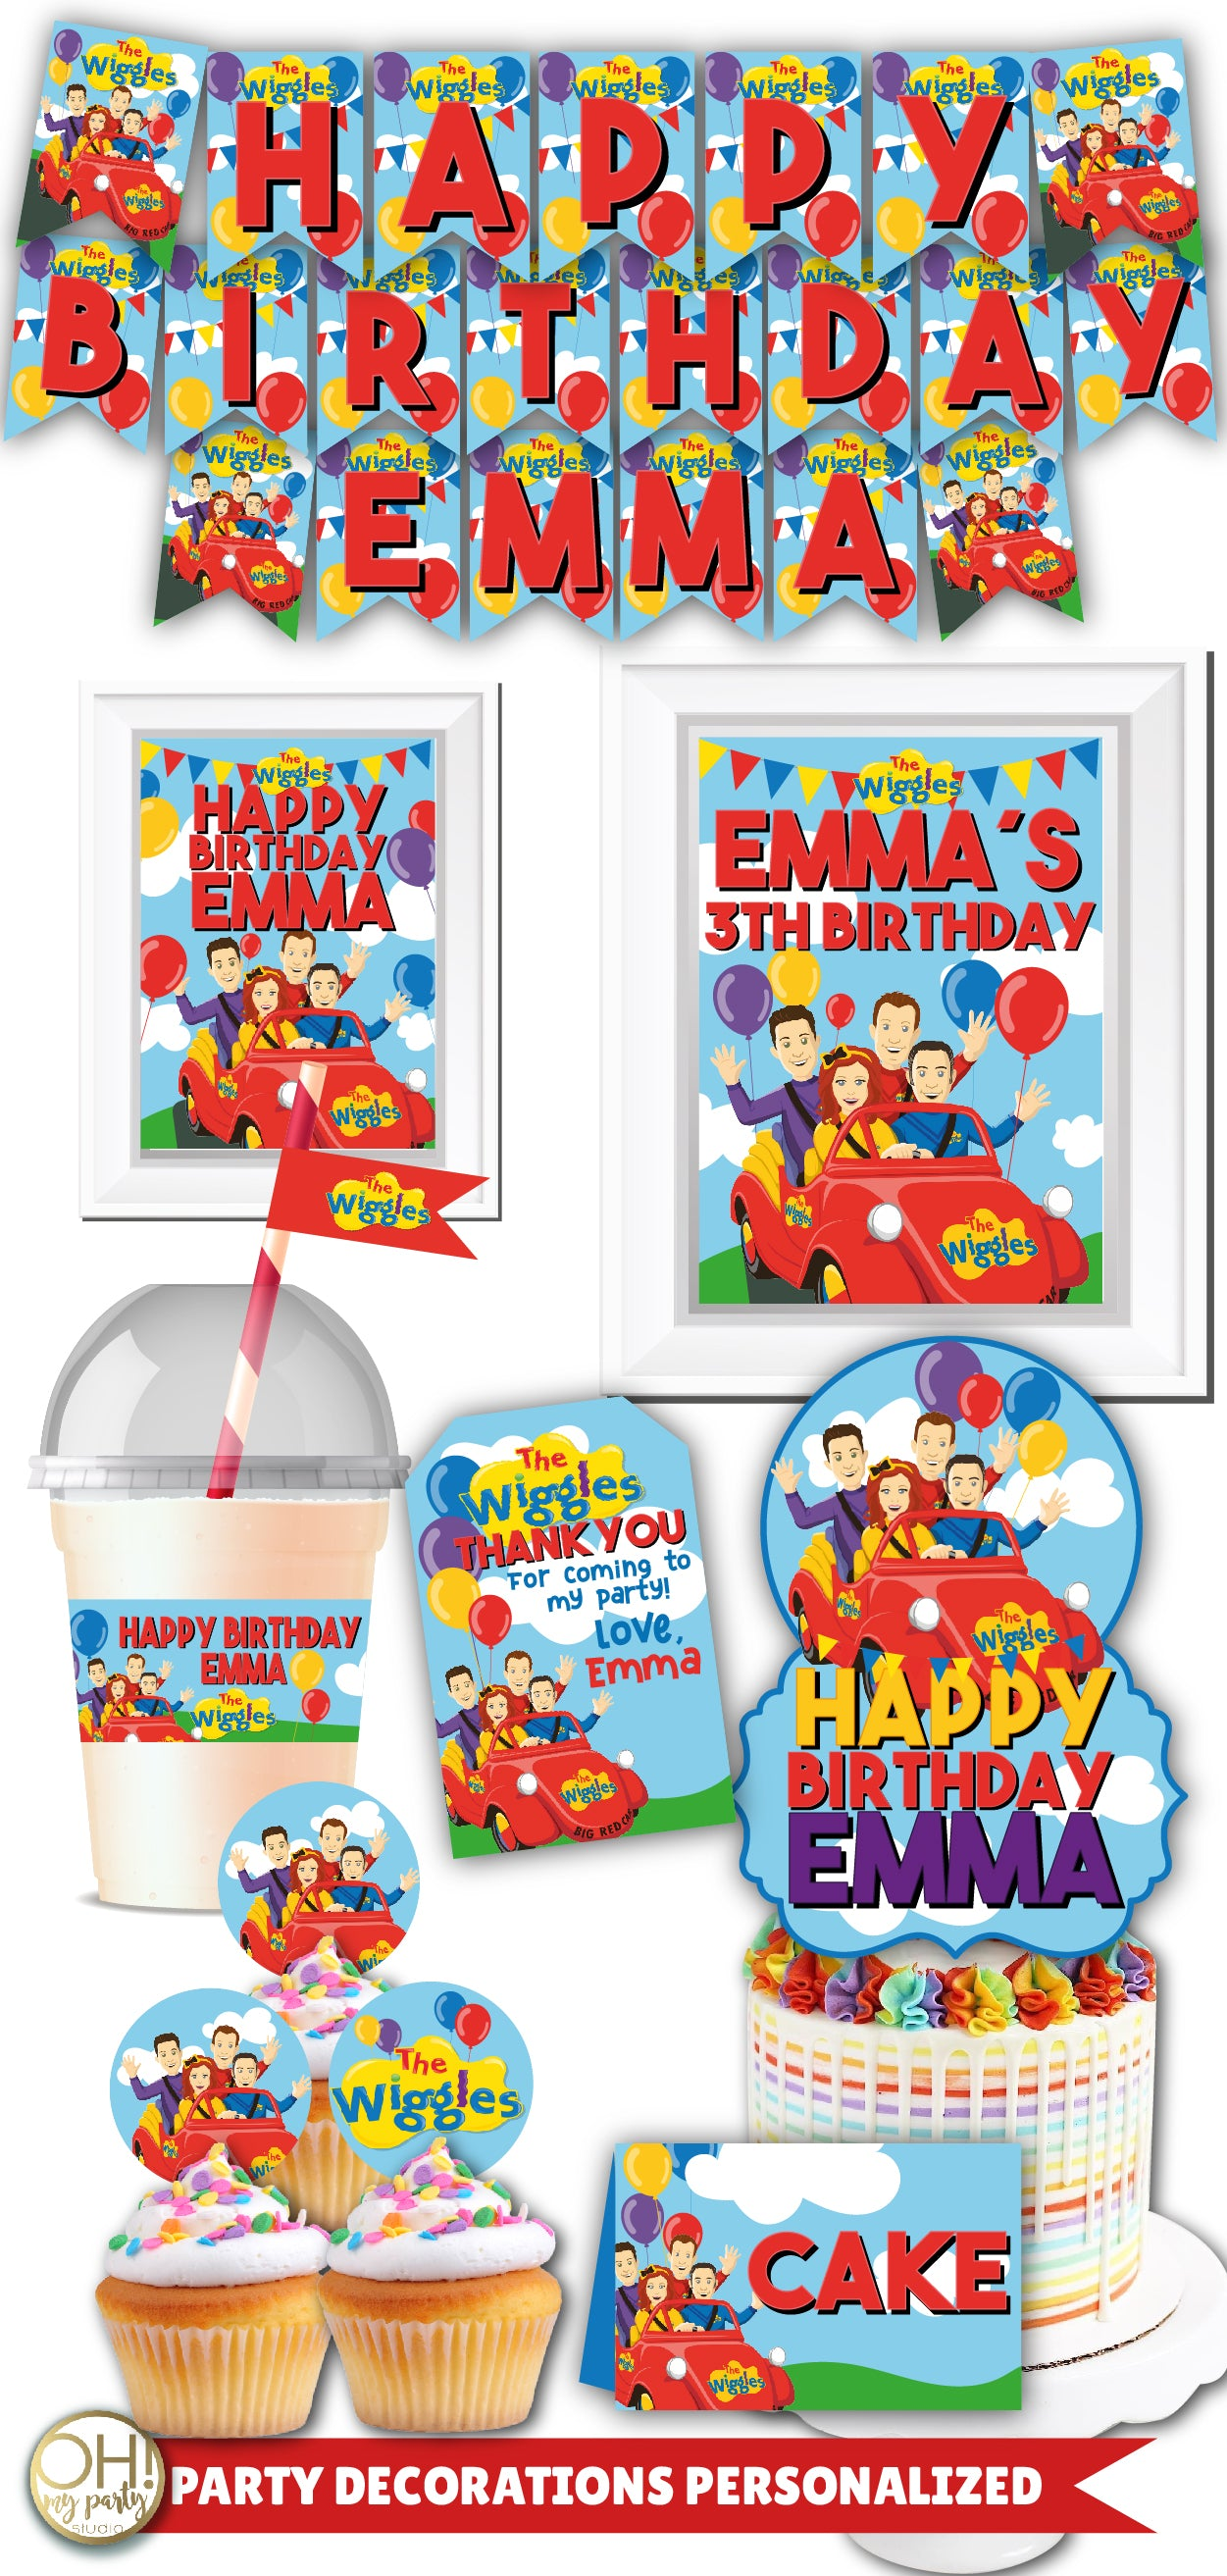 THE WIGGLES PARTY DECORATIONS, THE WIGGLES PARTY IDEAS, THE WIGGLES BIRTHDAY, THE WIGGLES PARTY, THE WIGGLES PARTY PRINTABLES, THE WIGGLES PARTY THEME, THE WIGGLES DECORATION, THE WIGGLES BANNER, THE WIGGLES CAKE, THE WIGGLES PRINTABLES, THE WIGGLES INVITATION, THE WIGGLES INVITE, THE WIGGLES INVITATIONS, THE WIGGLES BIRTHDAY, THE WIGGLES PARTY, THE WIGGLES BIRTHDAY PARTY